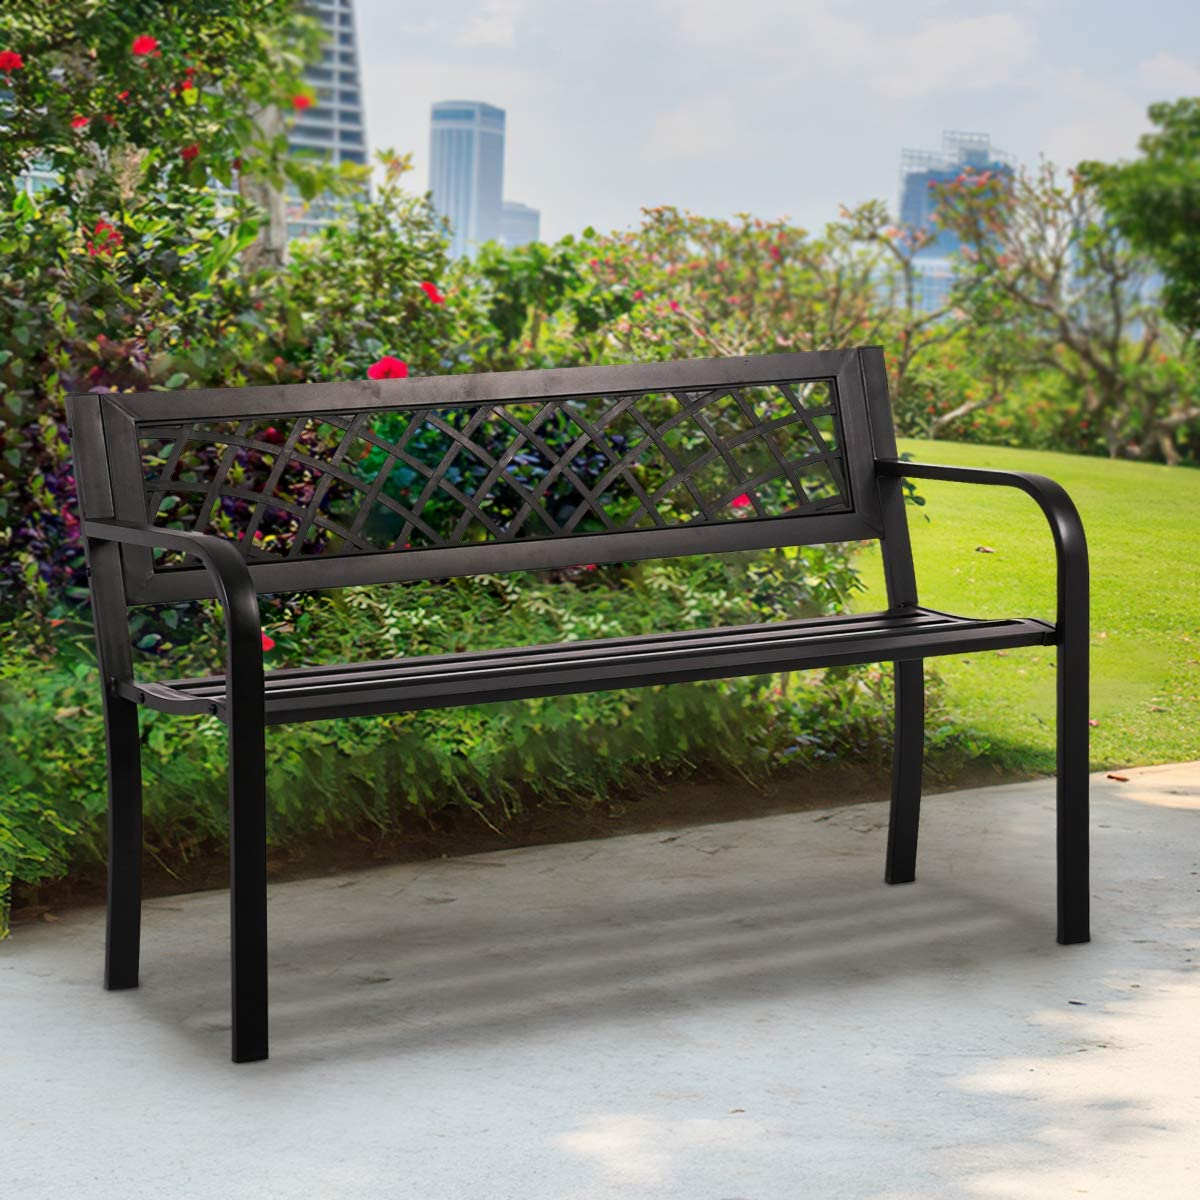 Park Outdoor Bench for Outside Clearance Garden Bench Metal Patio Bench with Armrests Sturdy Steel Frame Furniture Mesh Pattern,400LBS Weight Capacity, for Front Porch, Backyard, Lawn, Garden, Pool